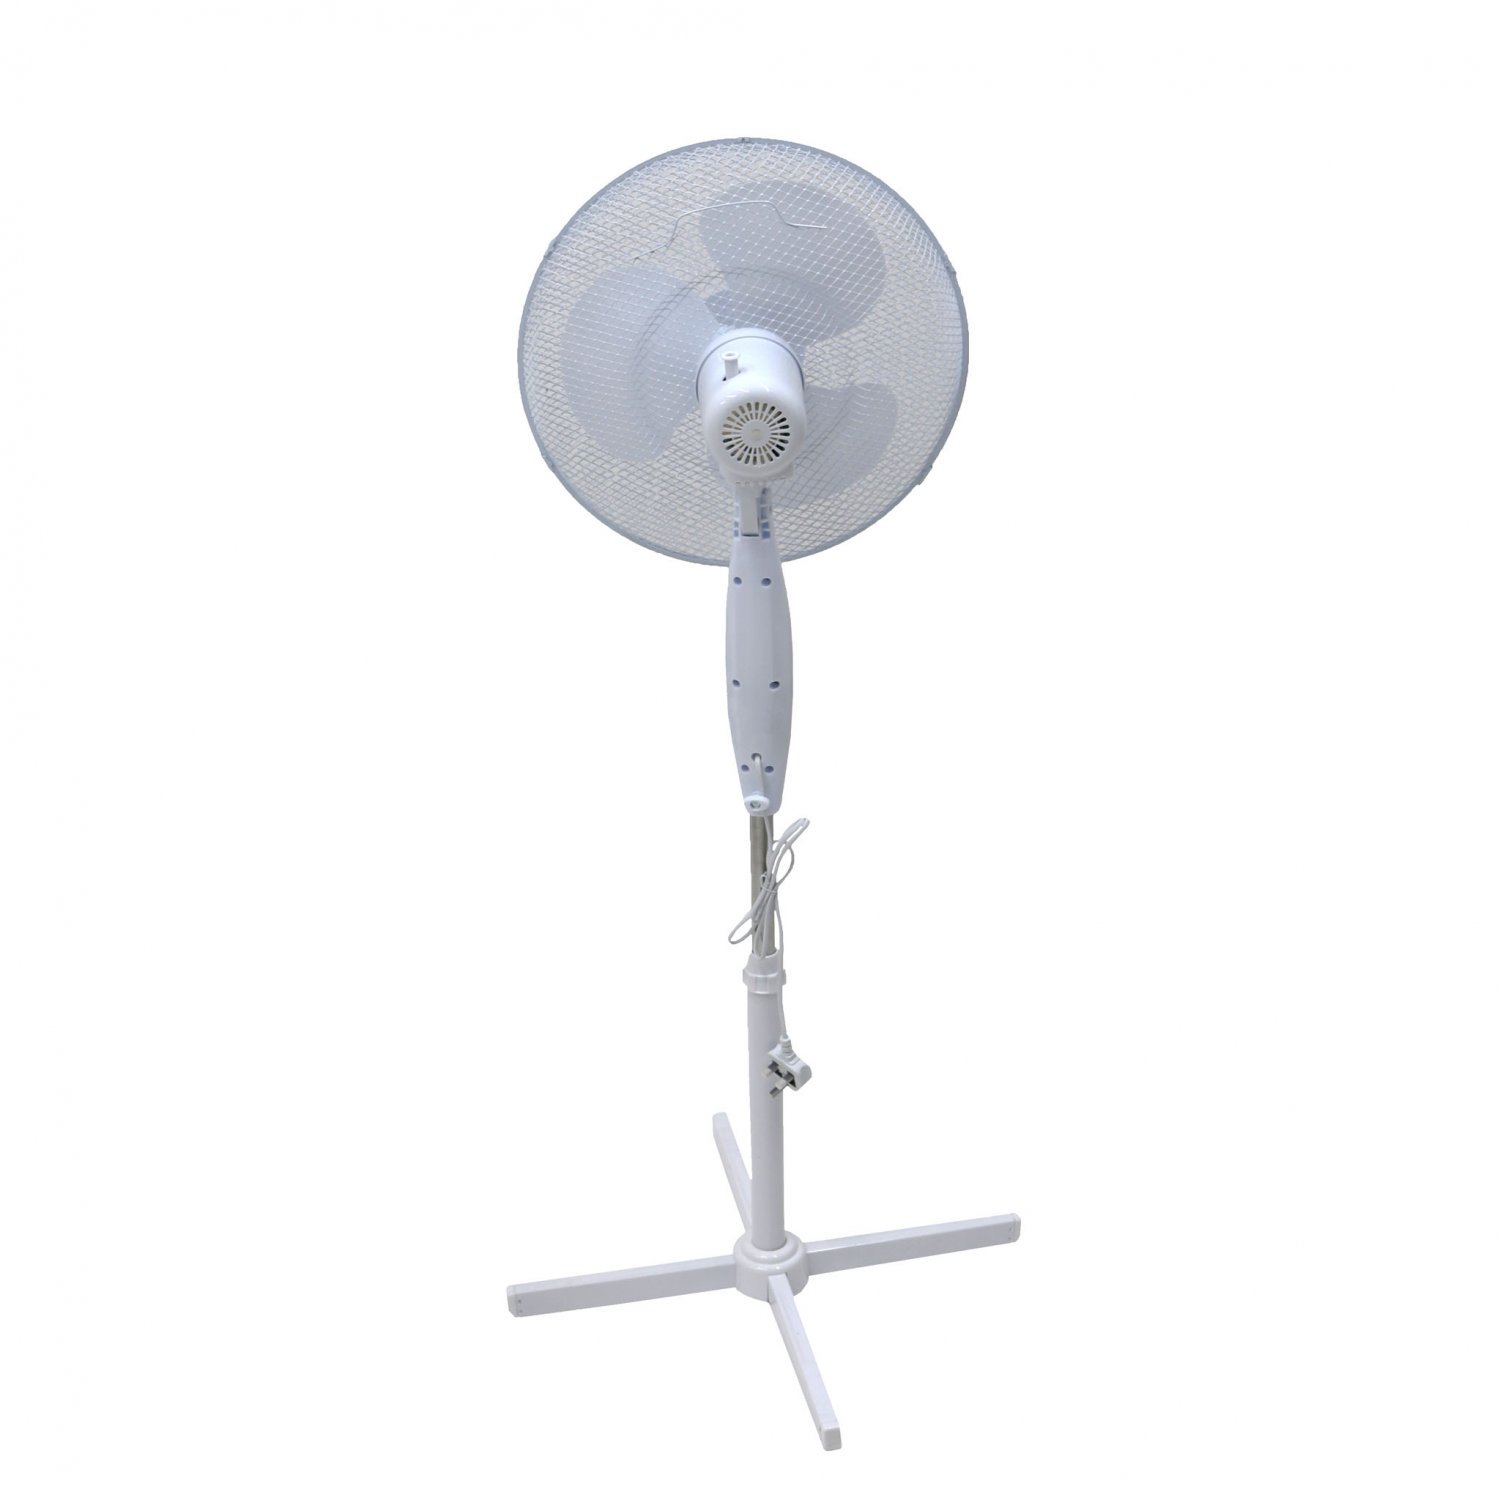 """(RU2) 16"""" Oscillating Pedestal Electric Fan The fan head oscillates and tilts which mea... - Image 2 of 2"""